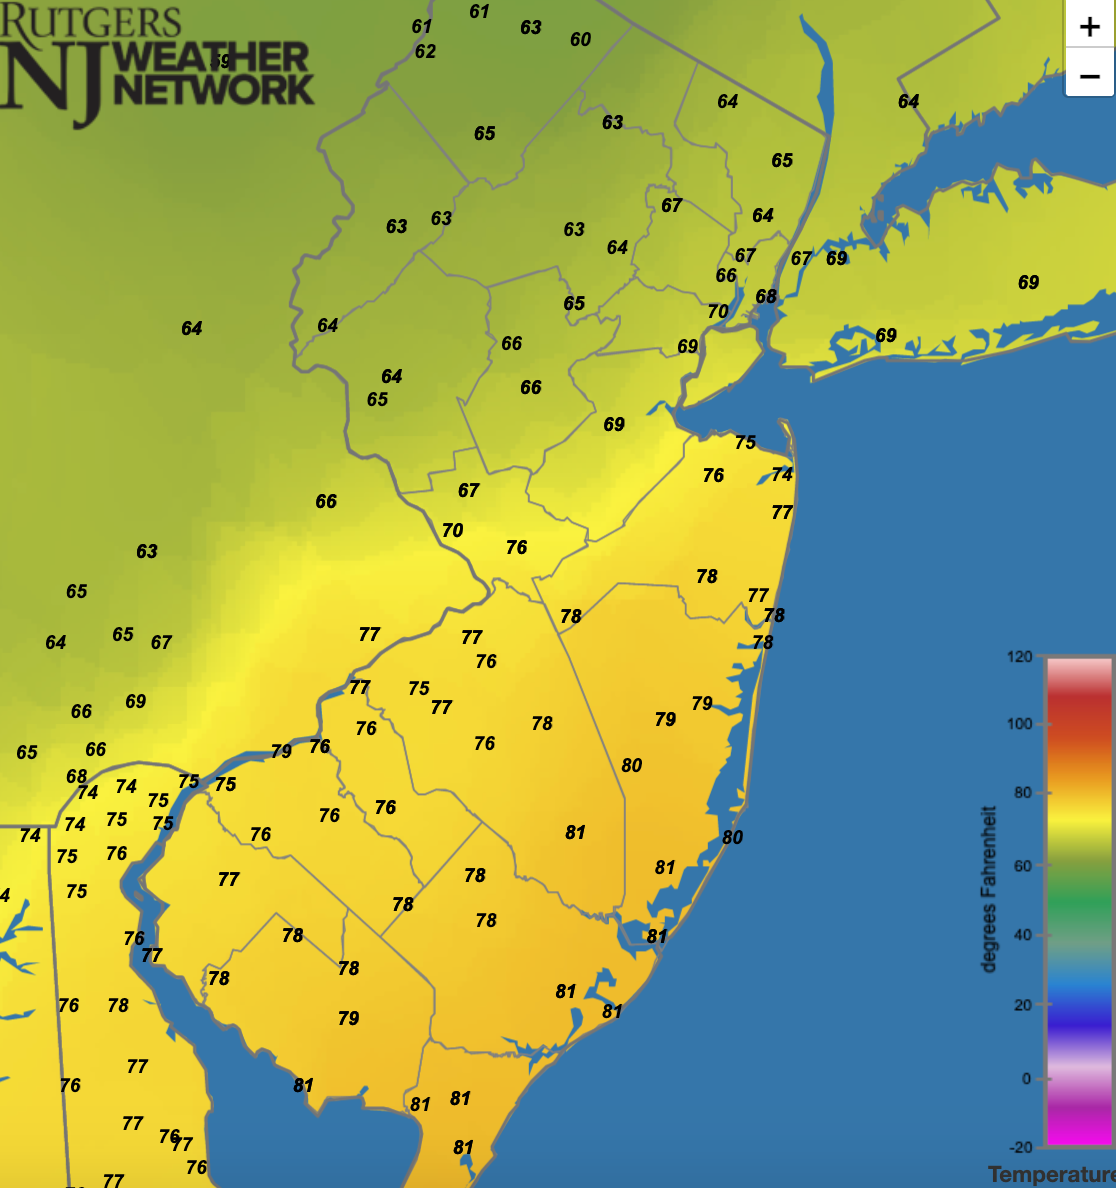 Surface air temperatures at 8:10 PM EDT on September 1st as the low was located directly in the center of the state and the heaviest rains were falling just to the north of the warm front in Somerset County (source: Rutgers NJ Weather Network).